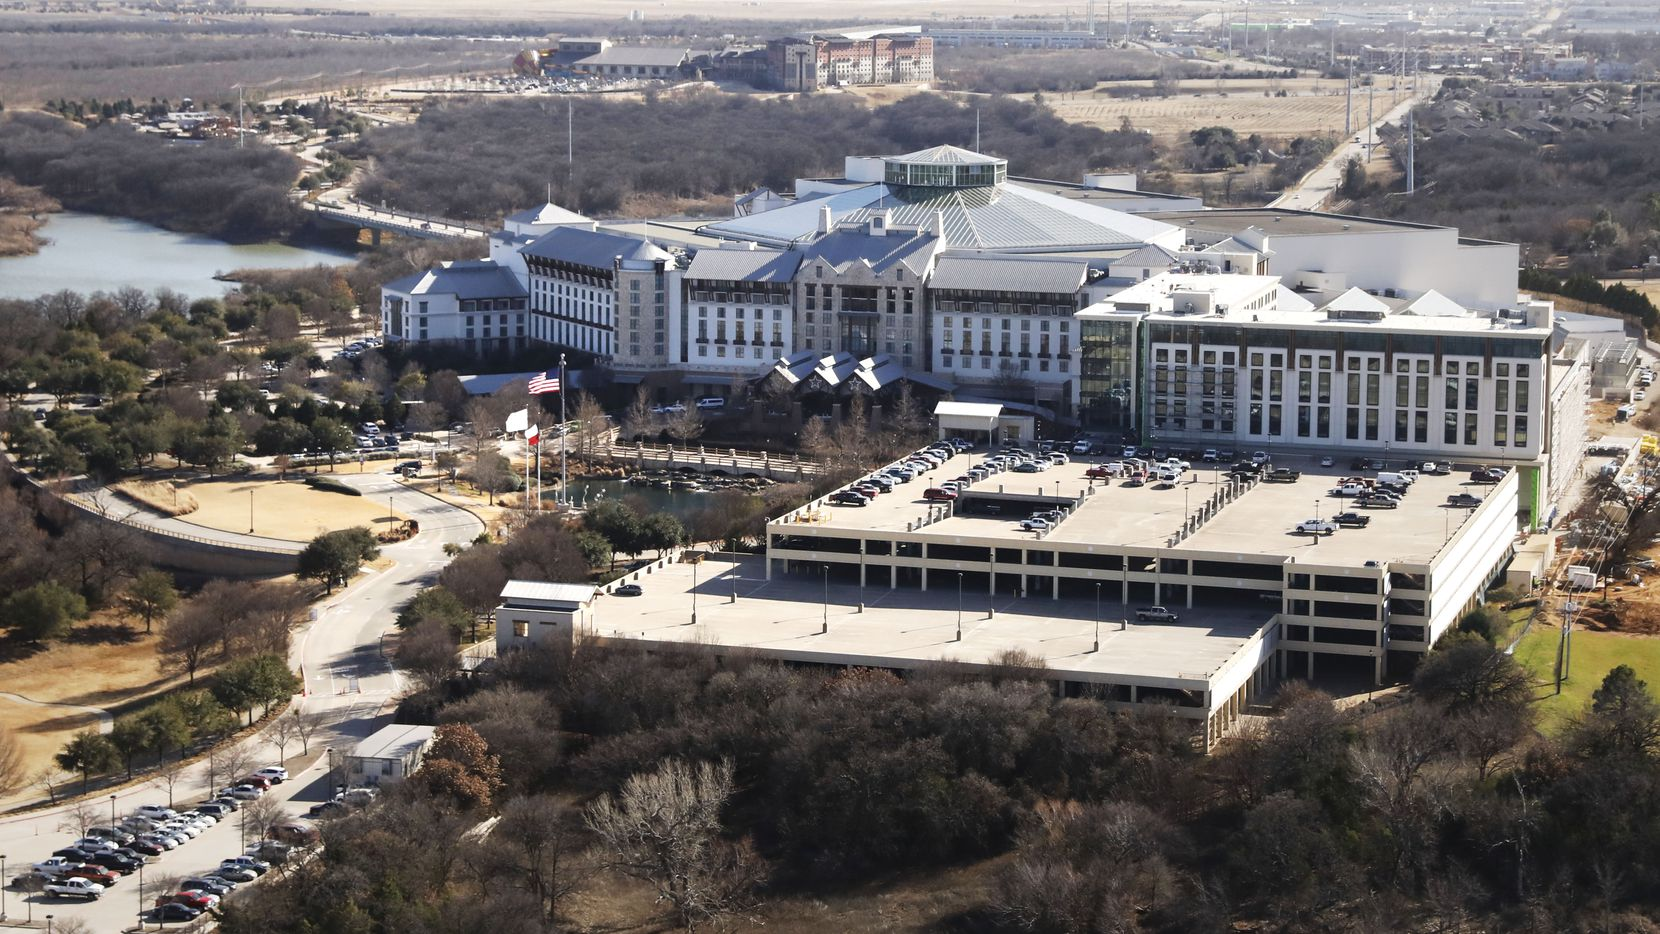 The Gaylord Texan Resort Hotel & Convention Center in Grapevine was ranked as the second most popular U.S. meeting hotel.